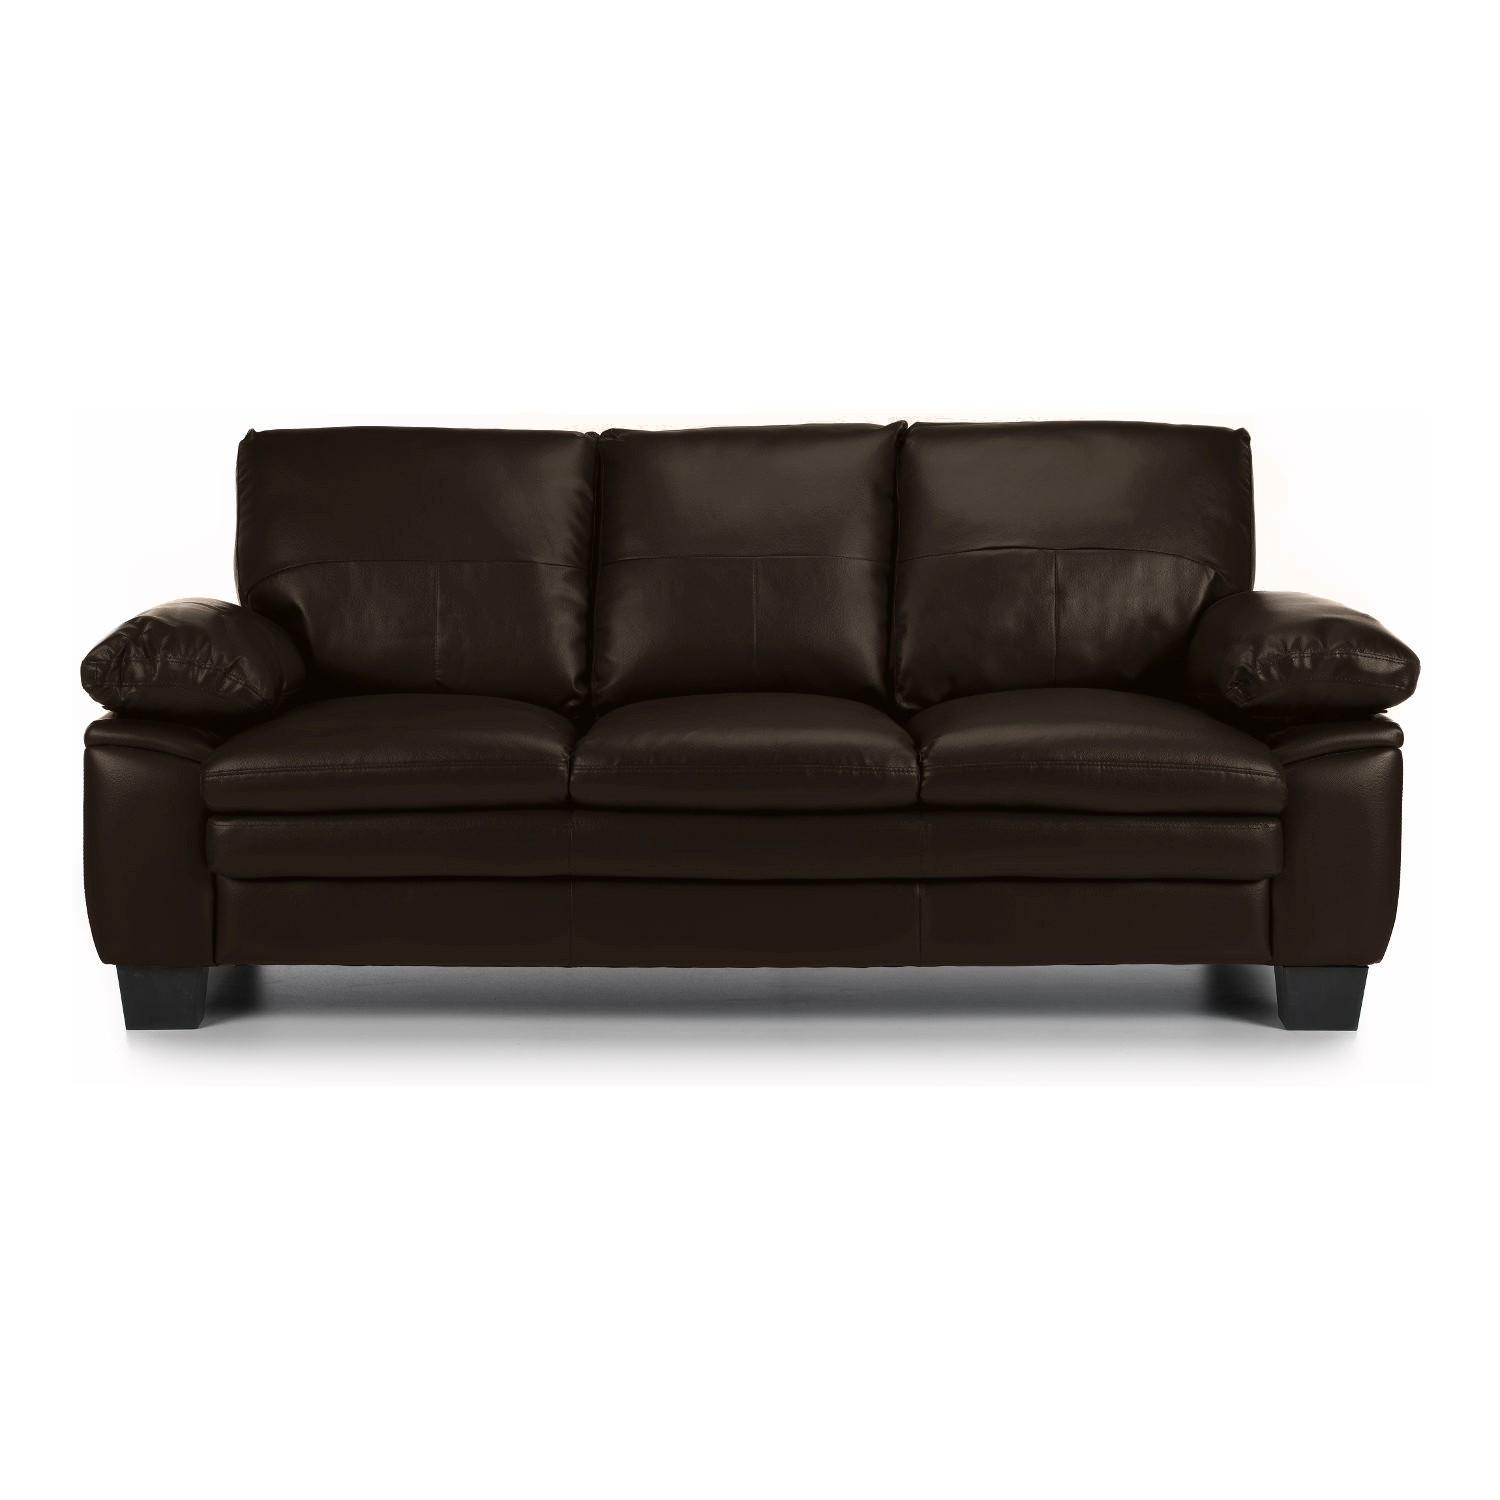 Beautiful Real Leather sofa Inspiration Modern Sofa